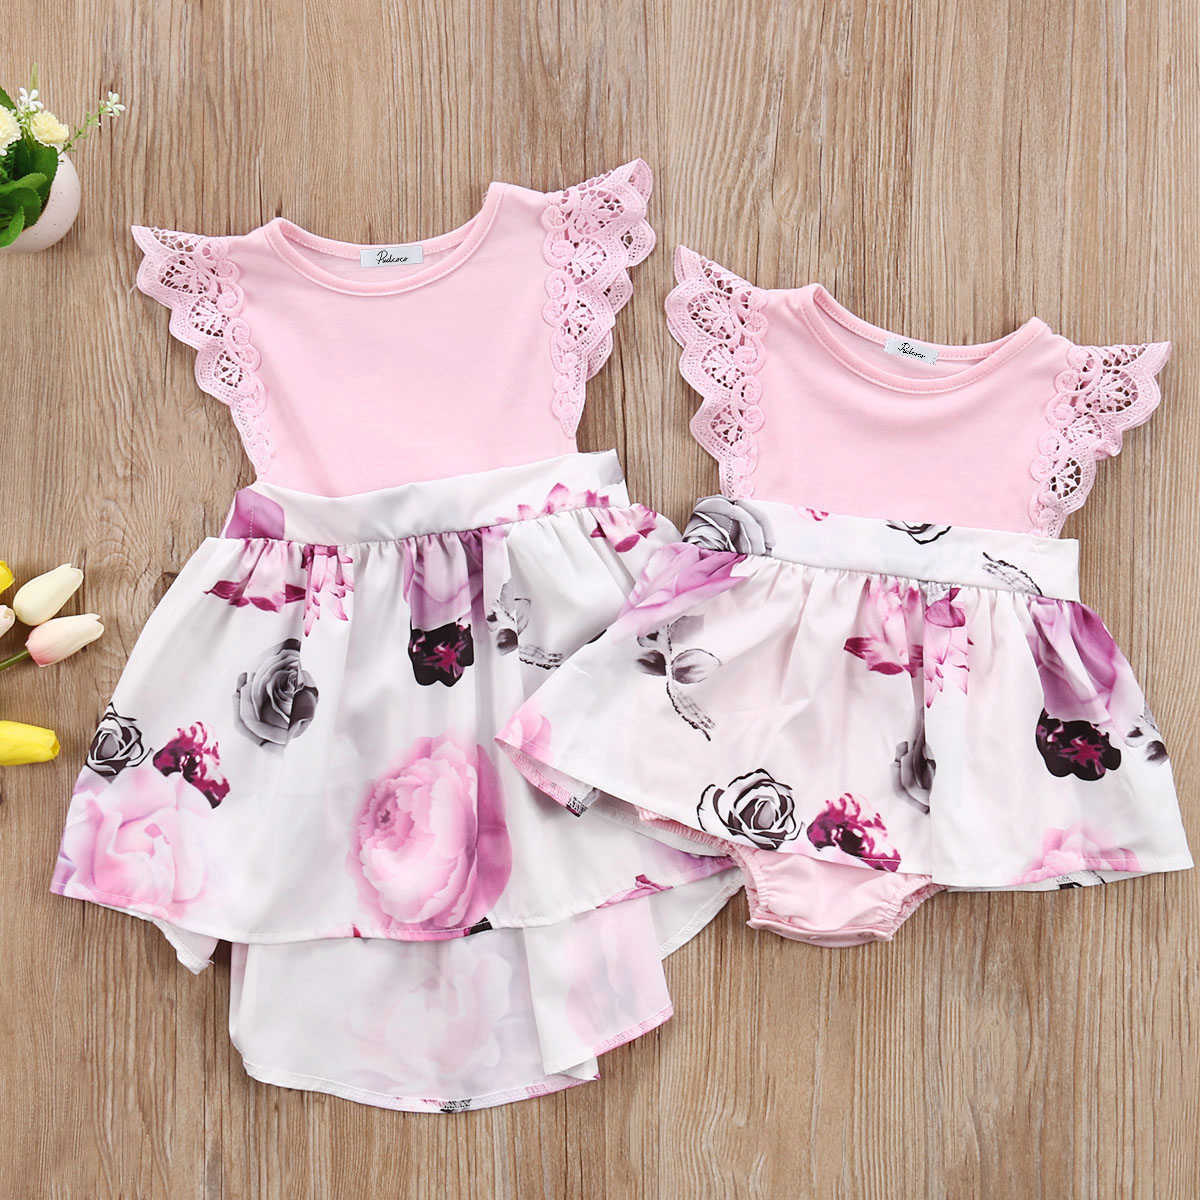 875274691c139 Sister Matching Outfits Little Sister Kids Girls Lace Floral Dress ...